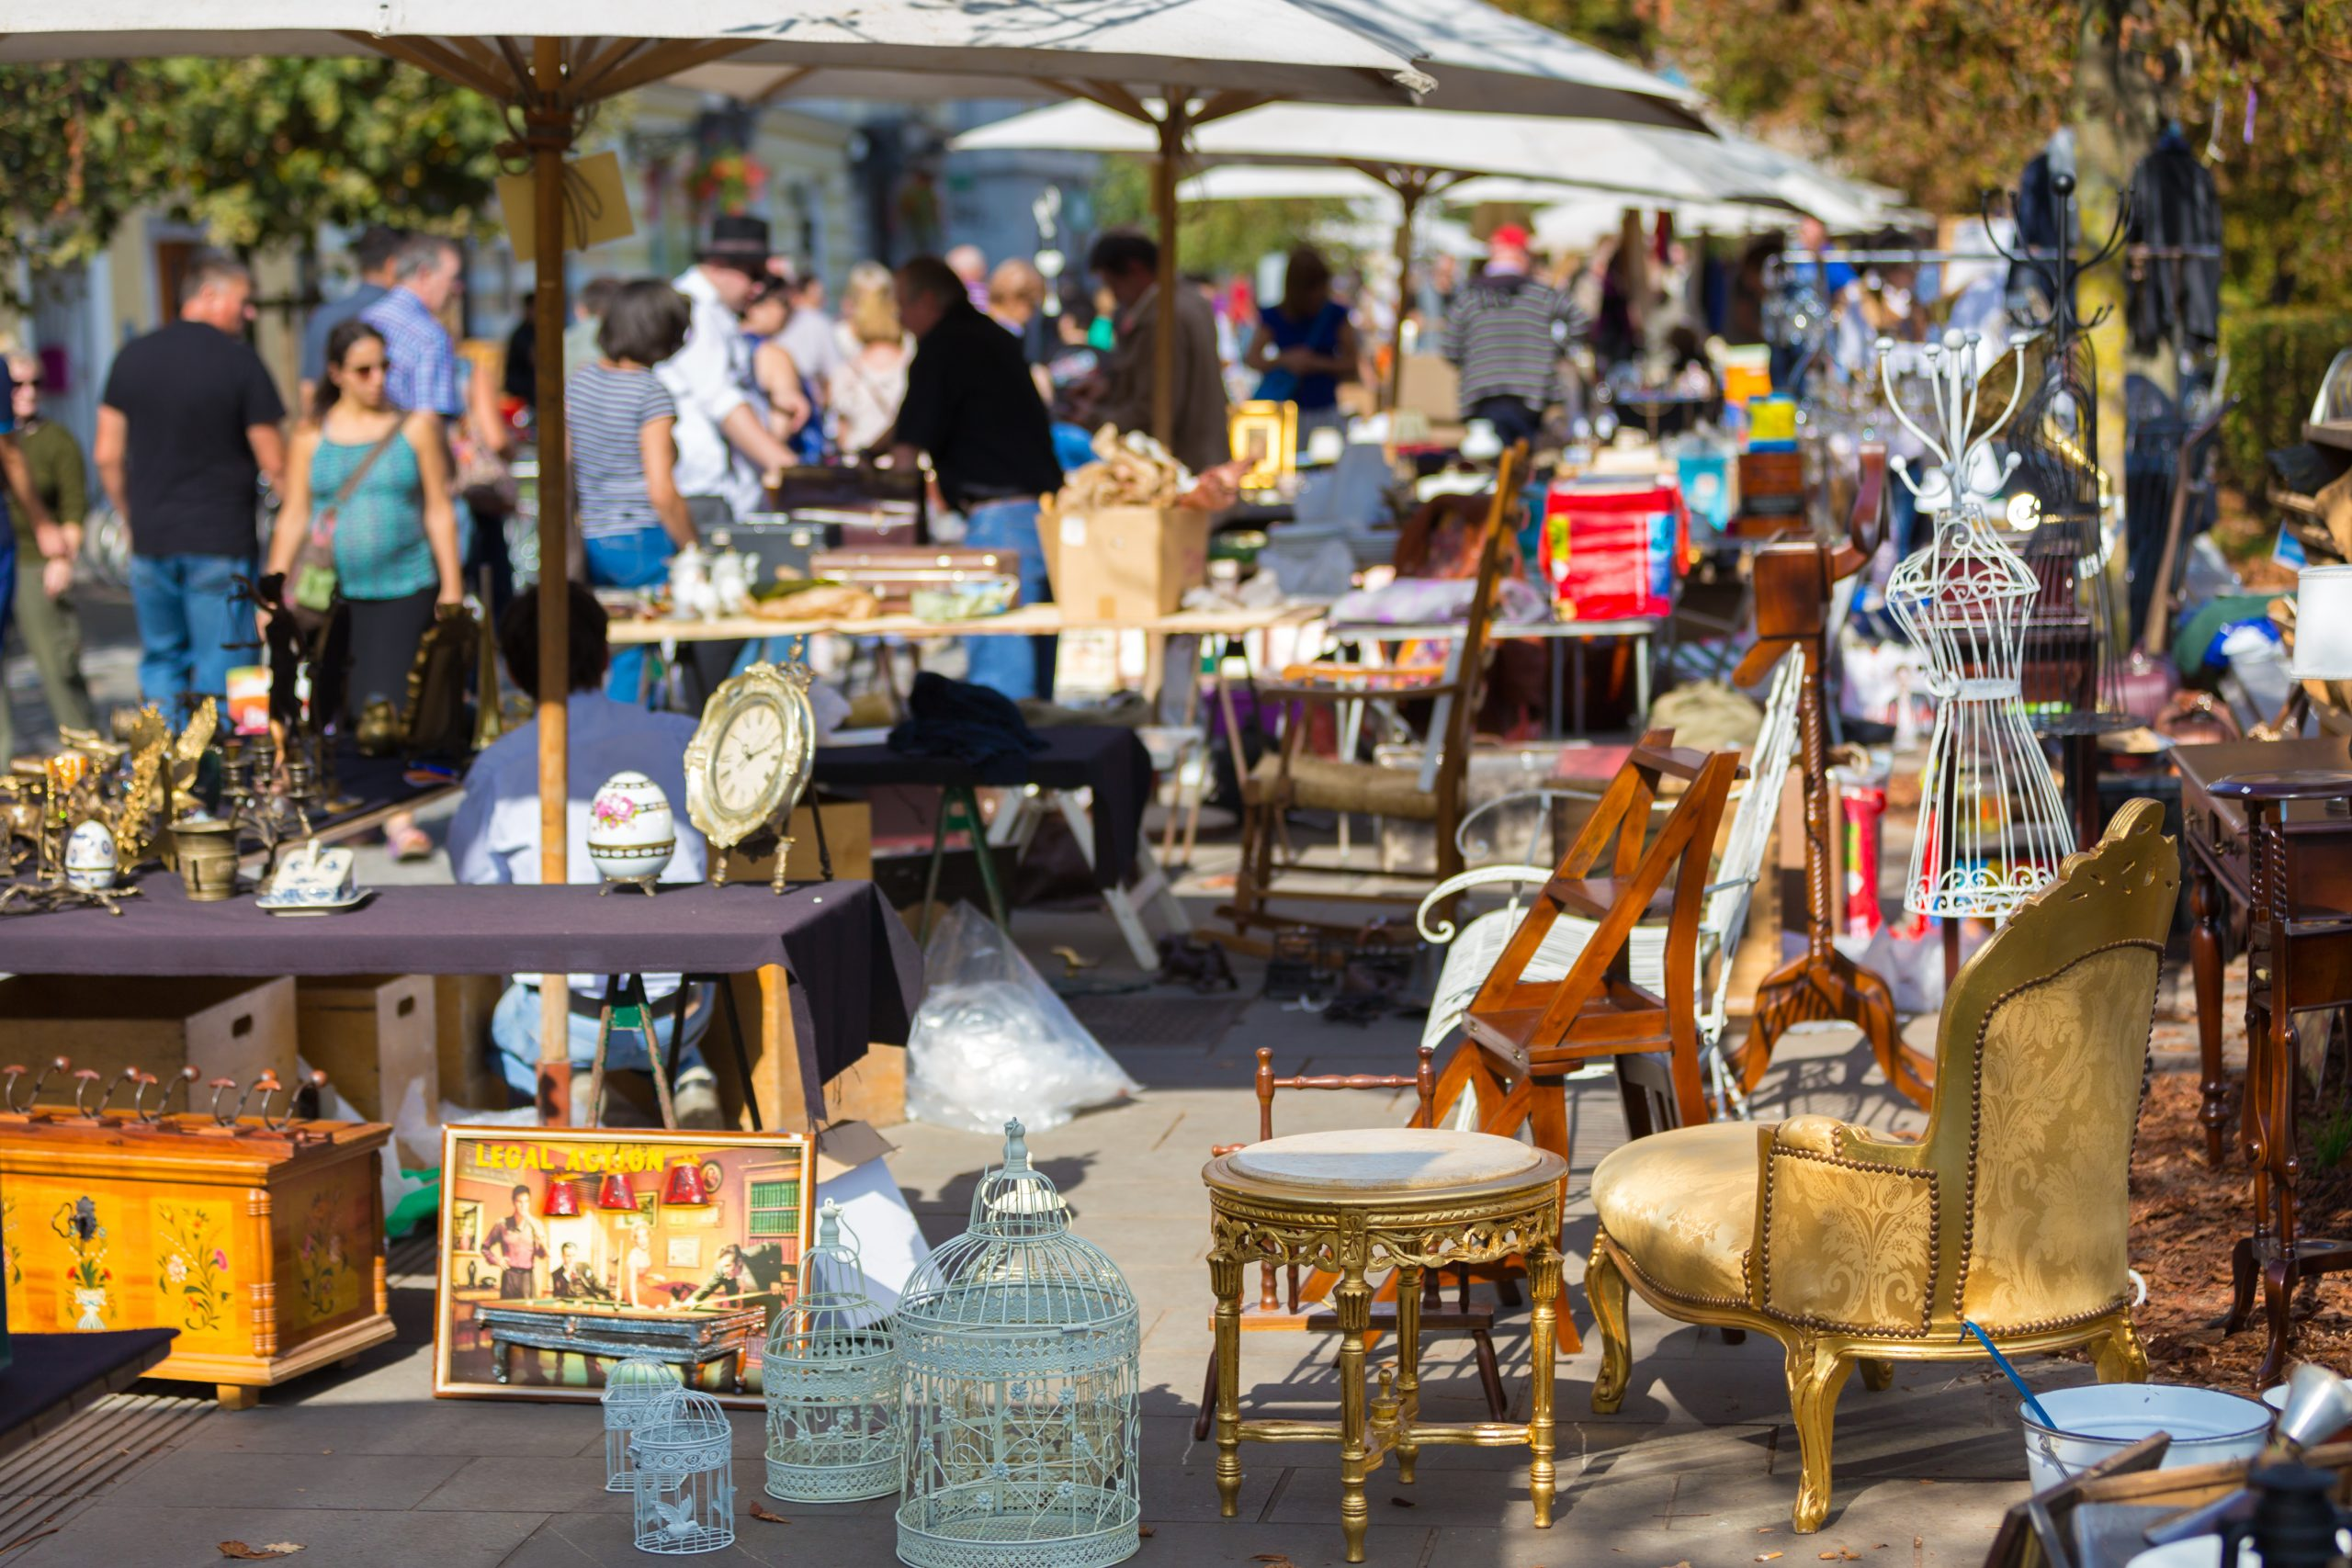 busy outdoor market selling furniture and other goods--texas trade days are perfect for finding hidden treasures!